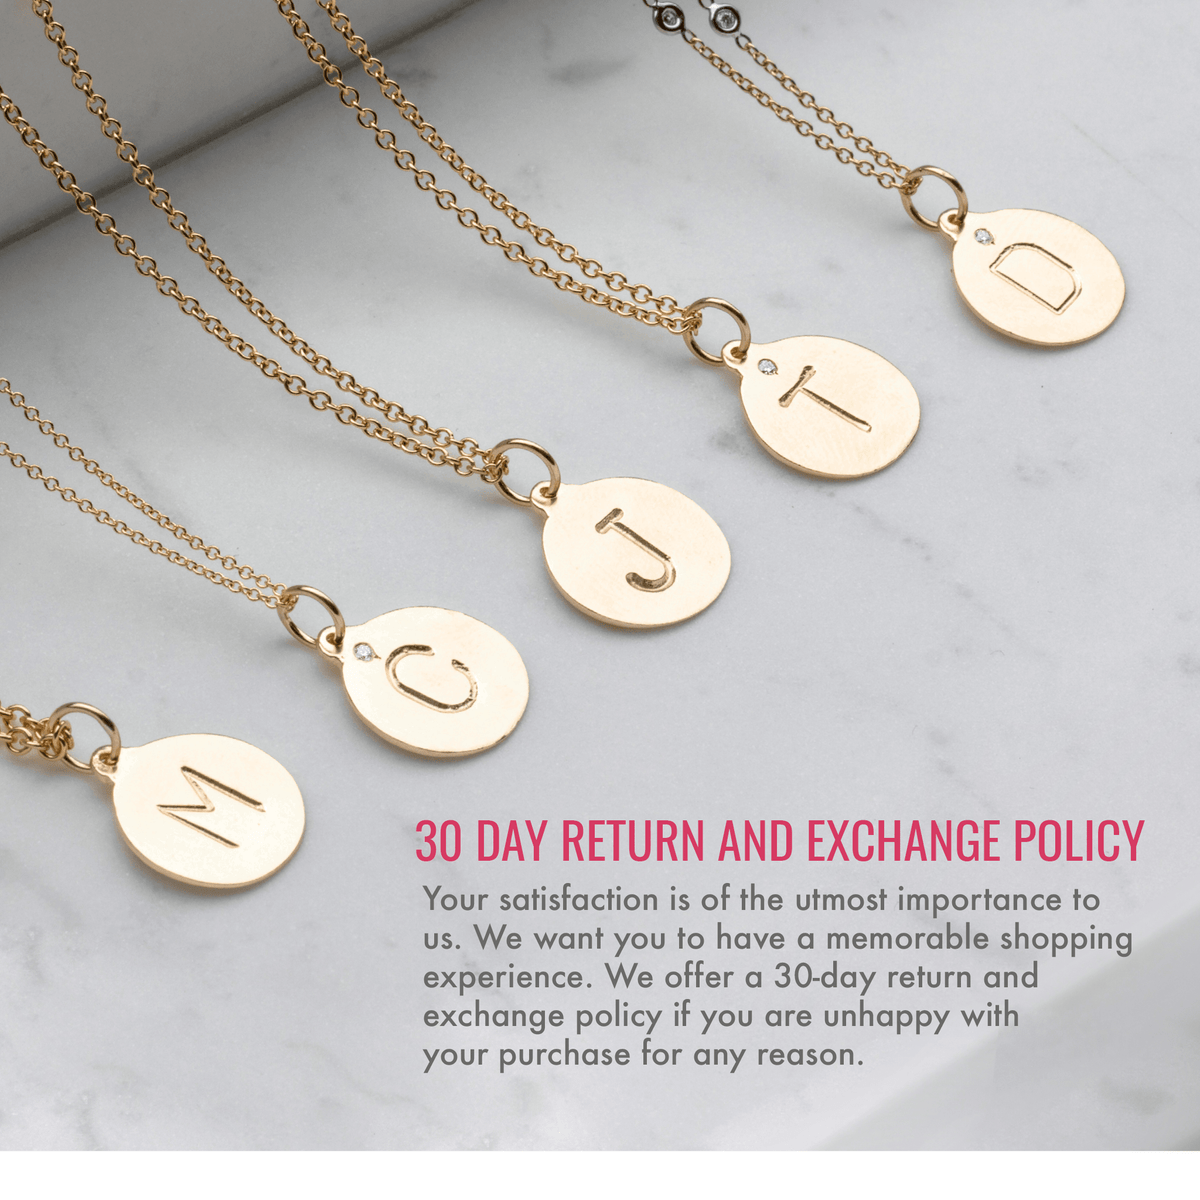 30 day return and exchange policy. Your satisfaction is of the utmost importance to us. We want you to have a memorable shopping experience. We offer a 30-day return and exchange policy if you are unhappy with your purchase for any reason